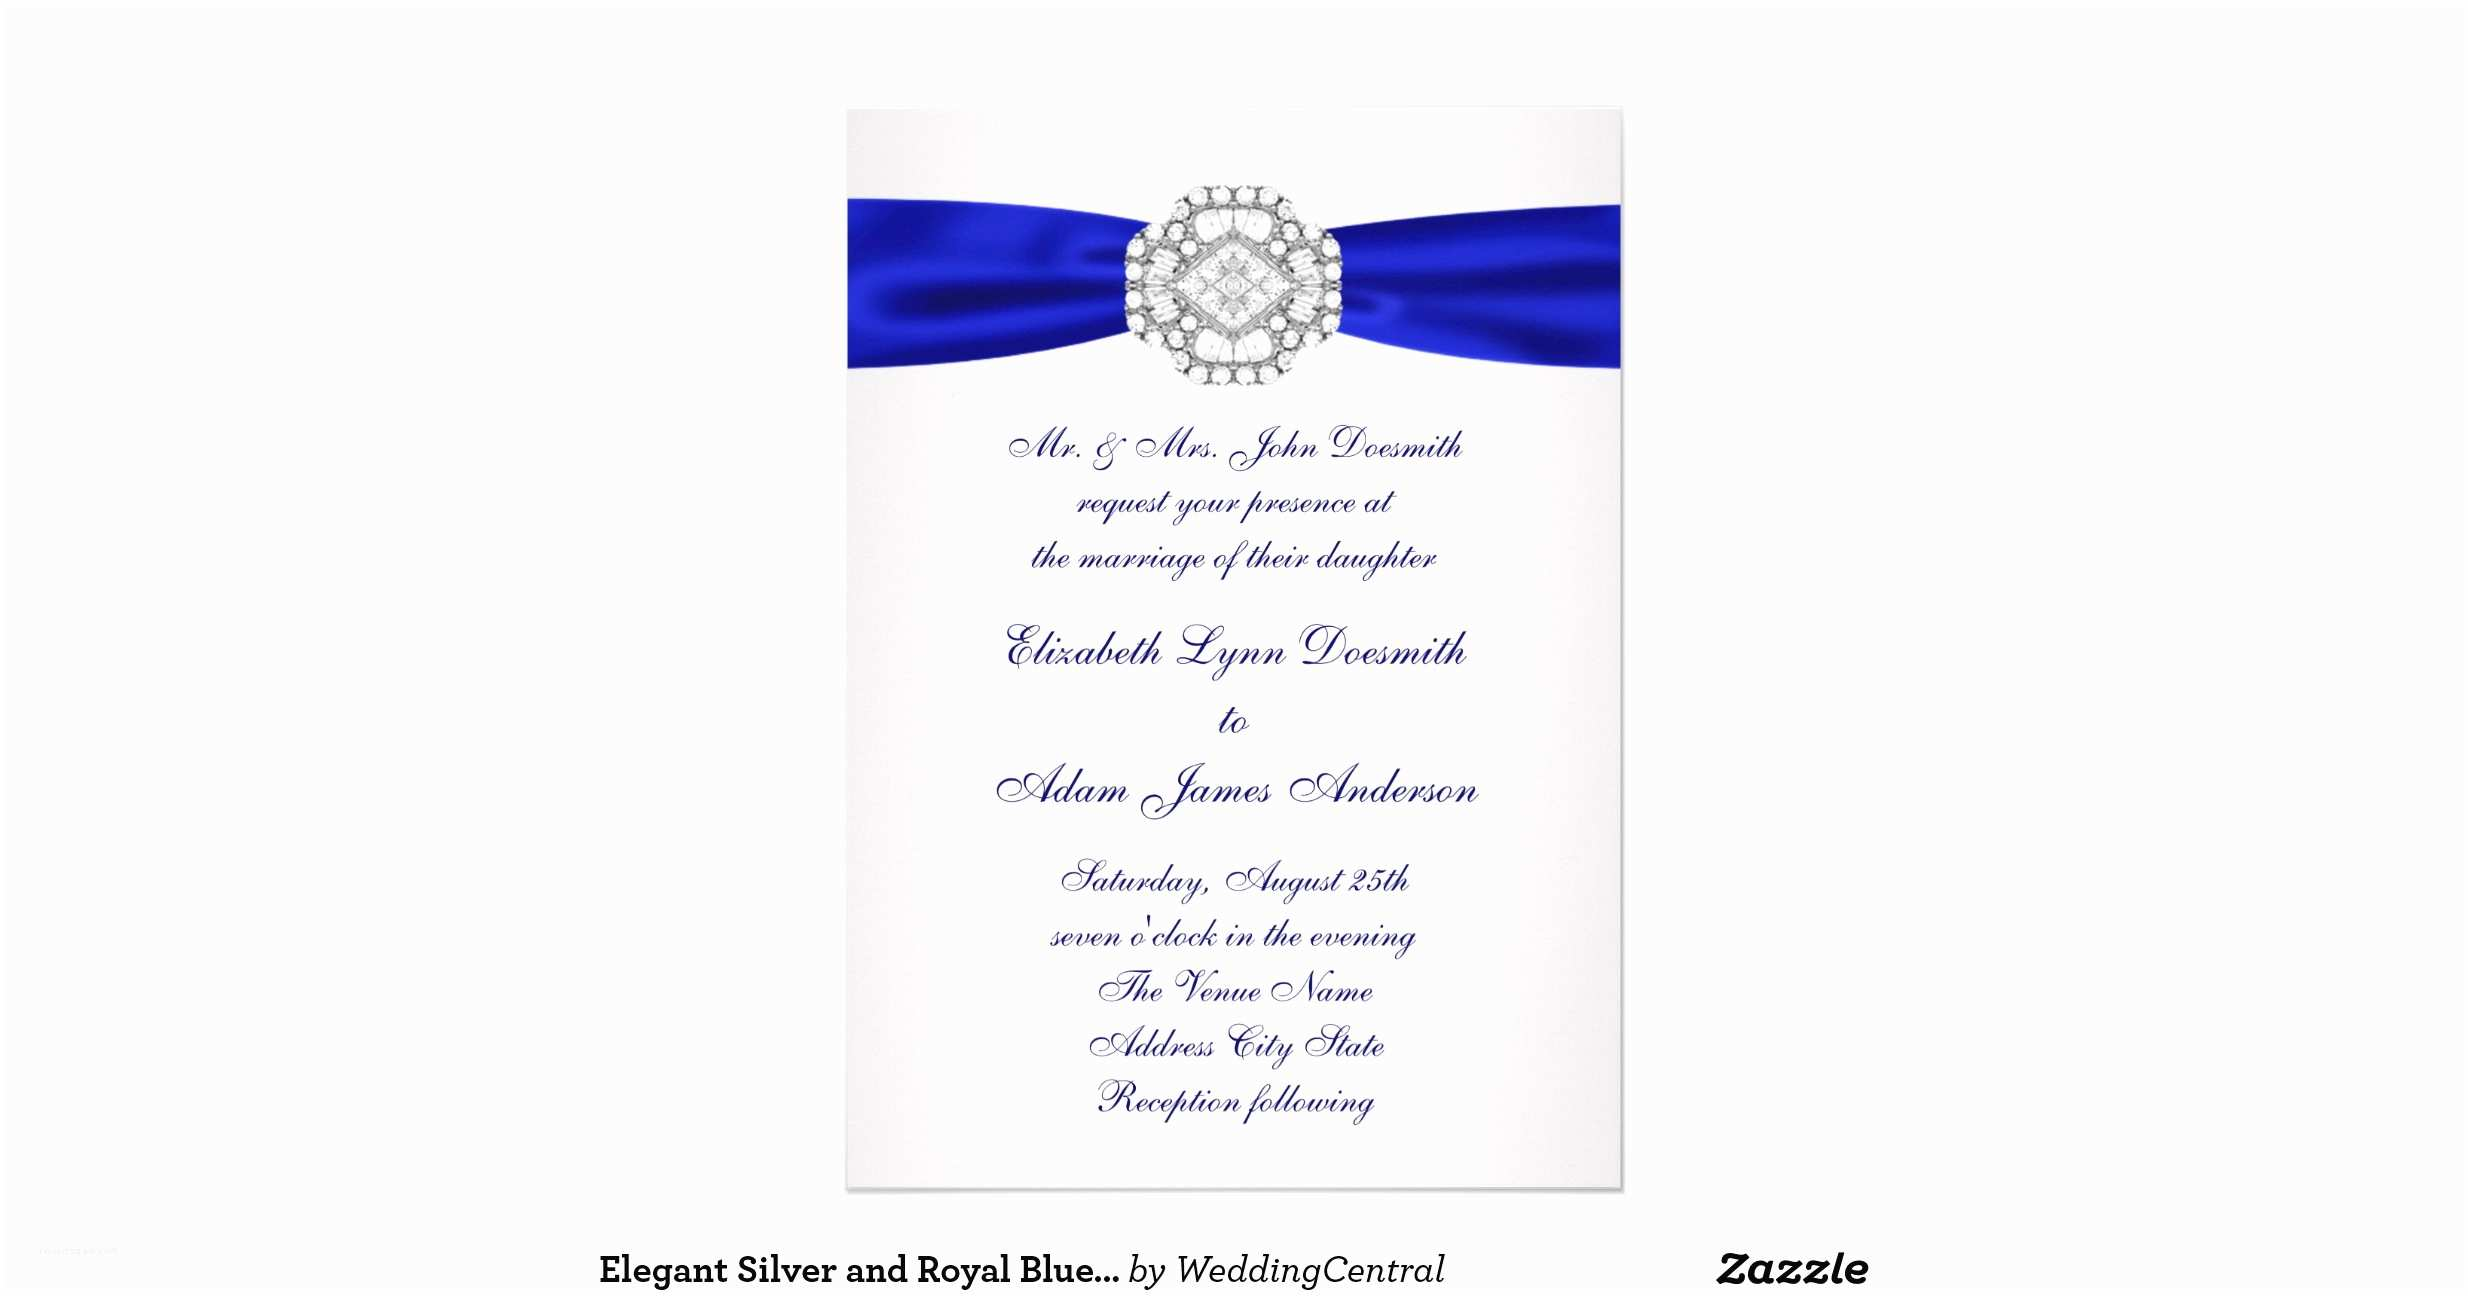 Elegant Silver Wedding Invitations Elegant Silver and Royal Blue Wedding Invitations